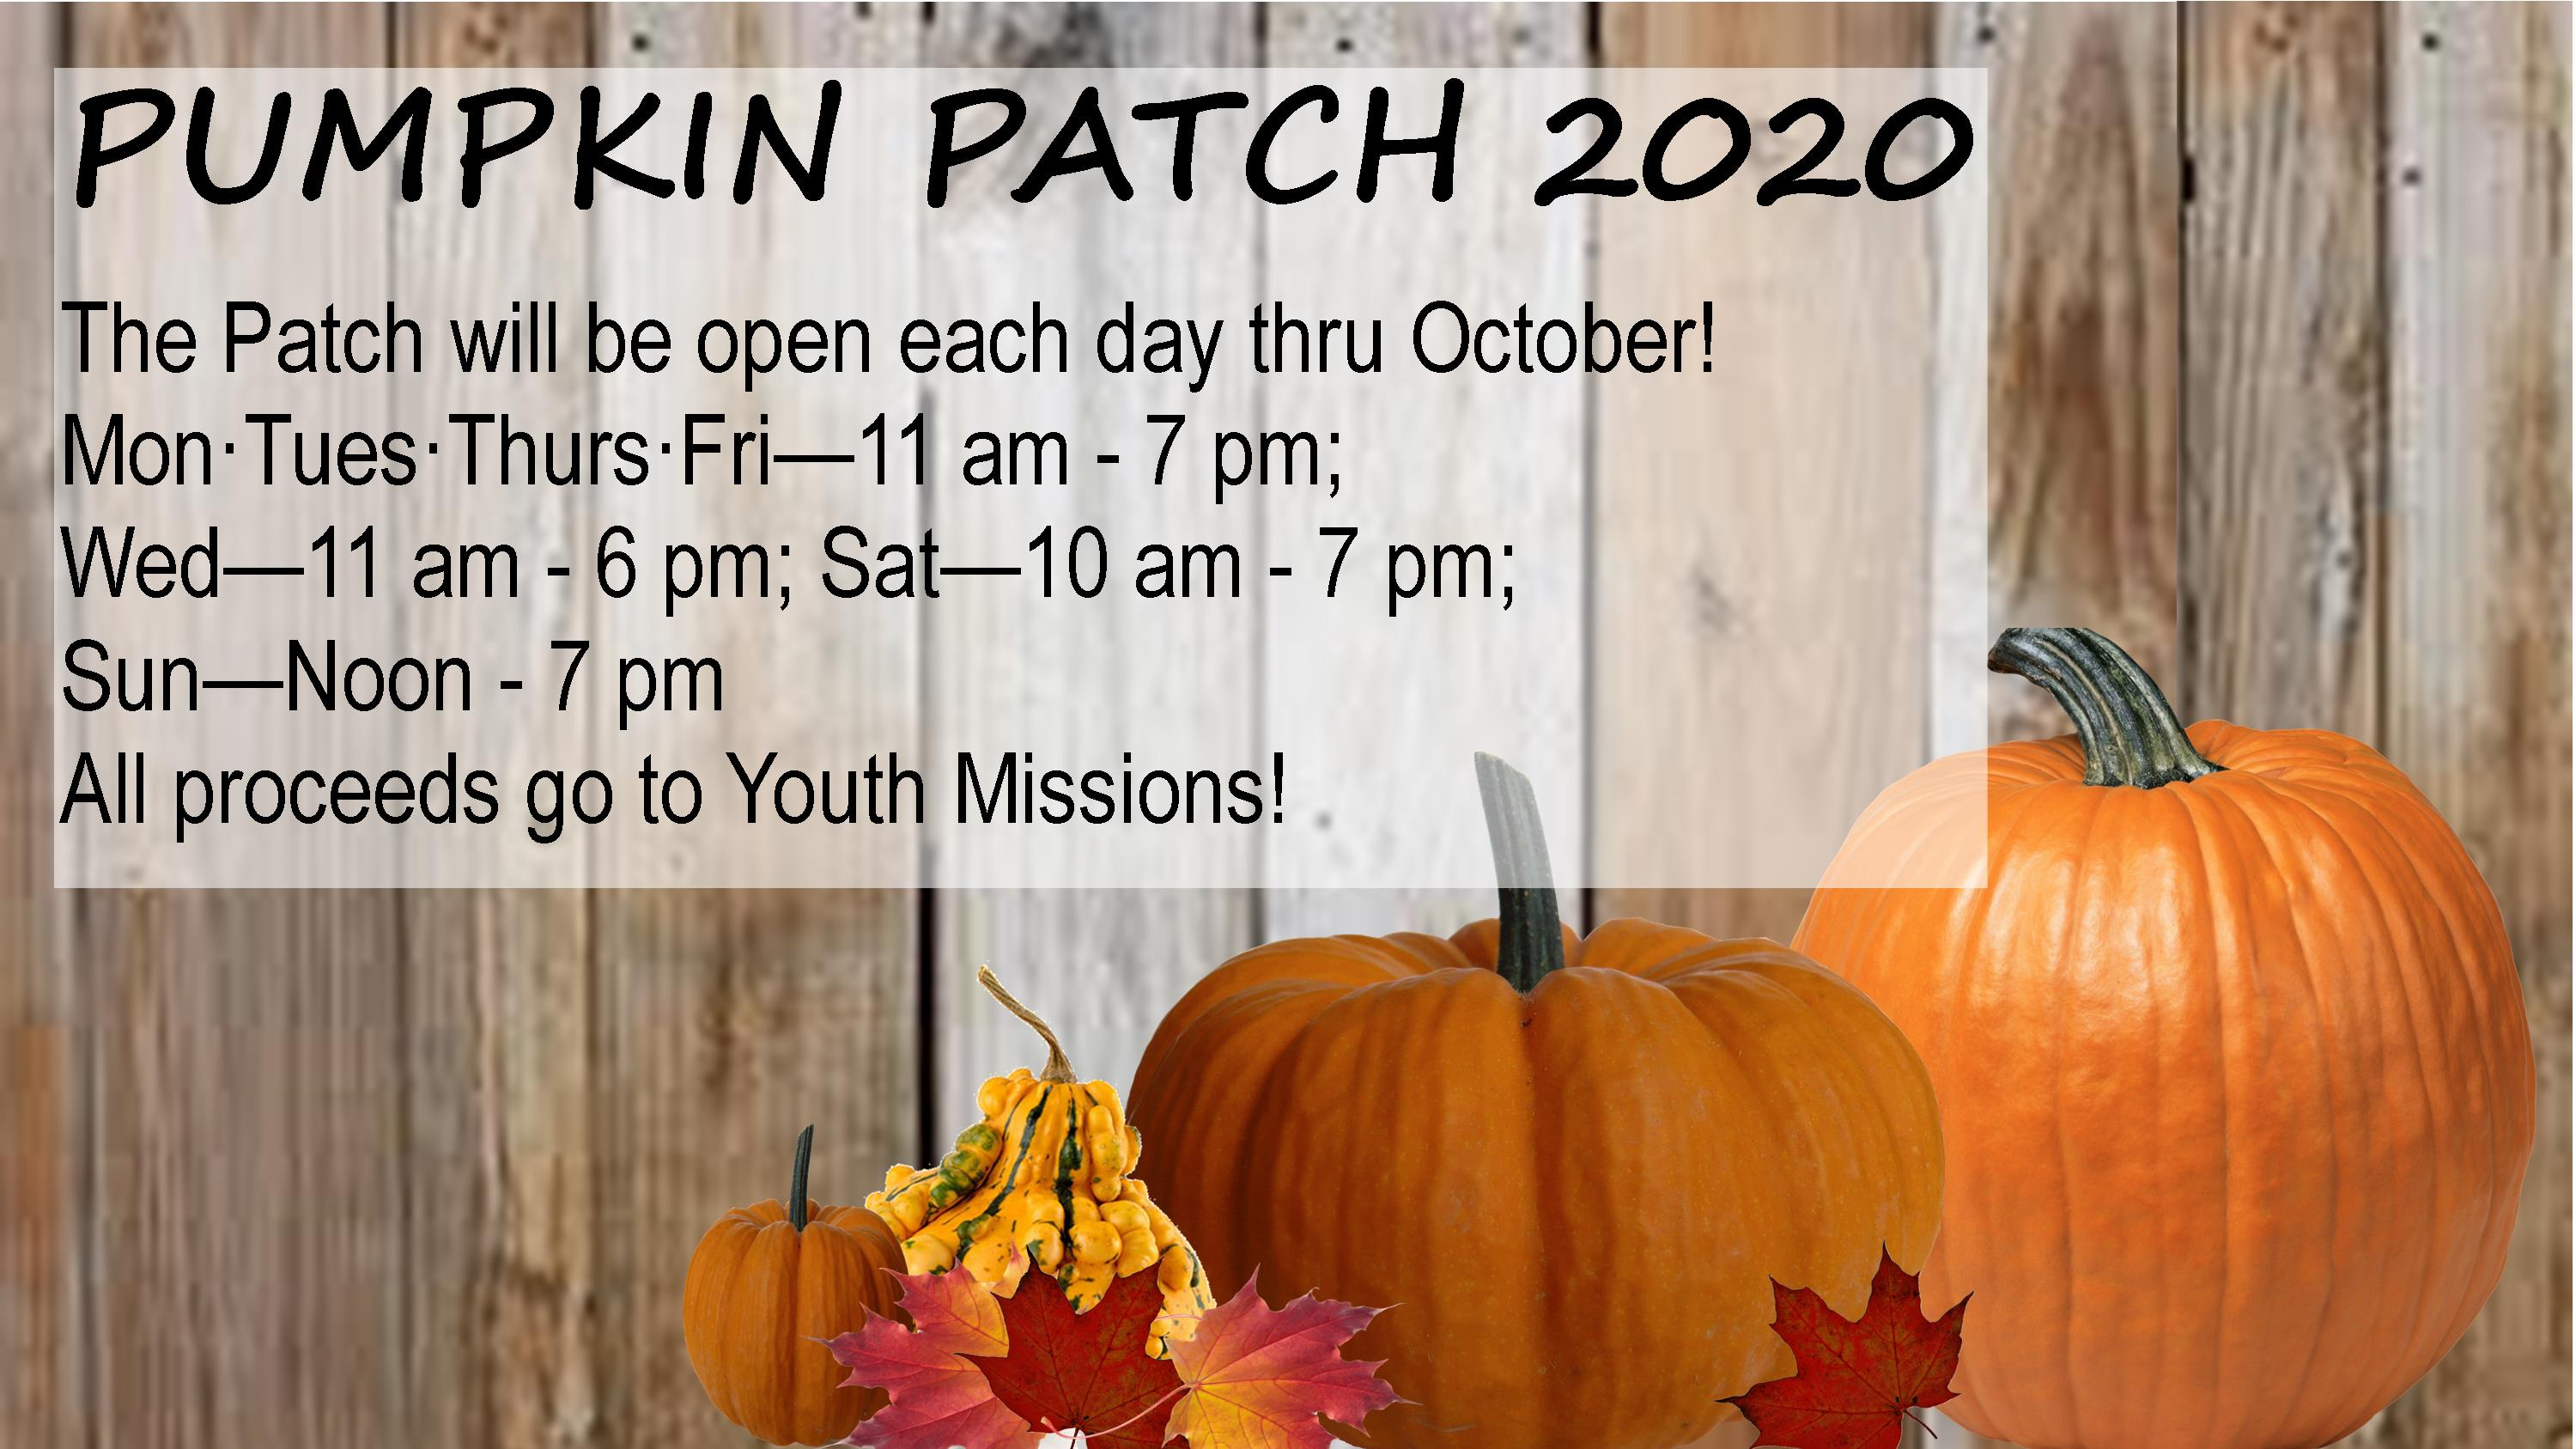 Pumpkin Patch 2020 Schedule